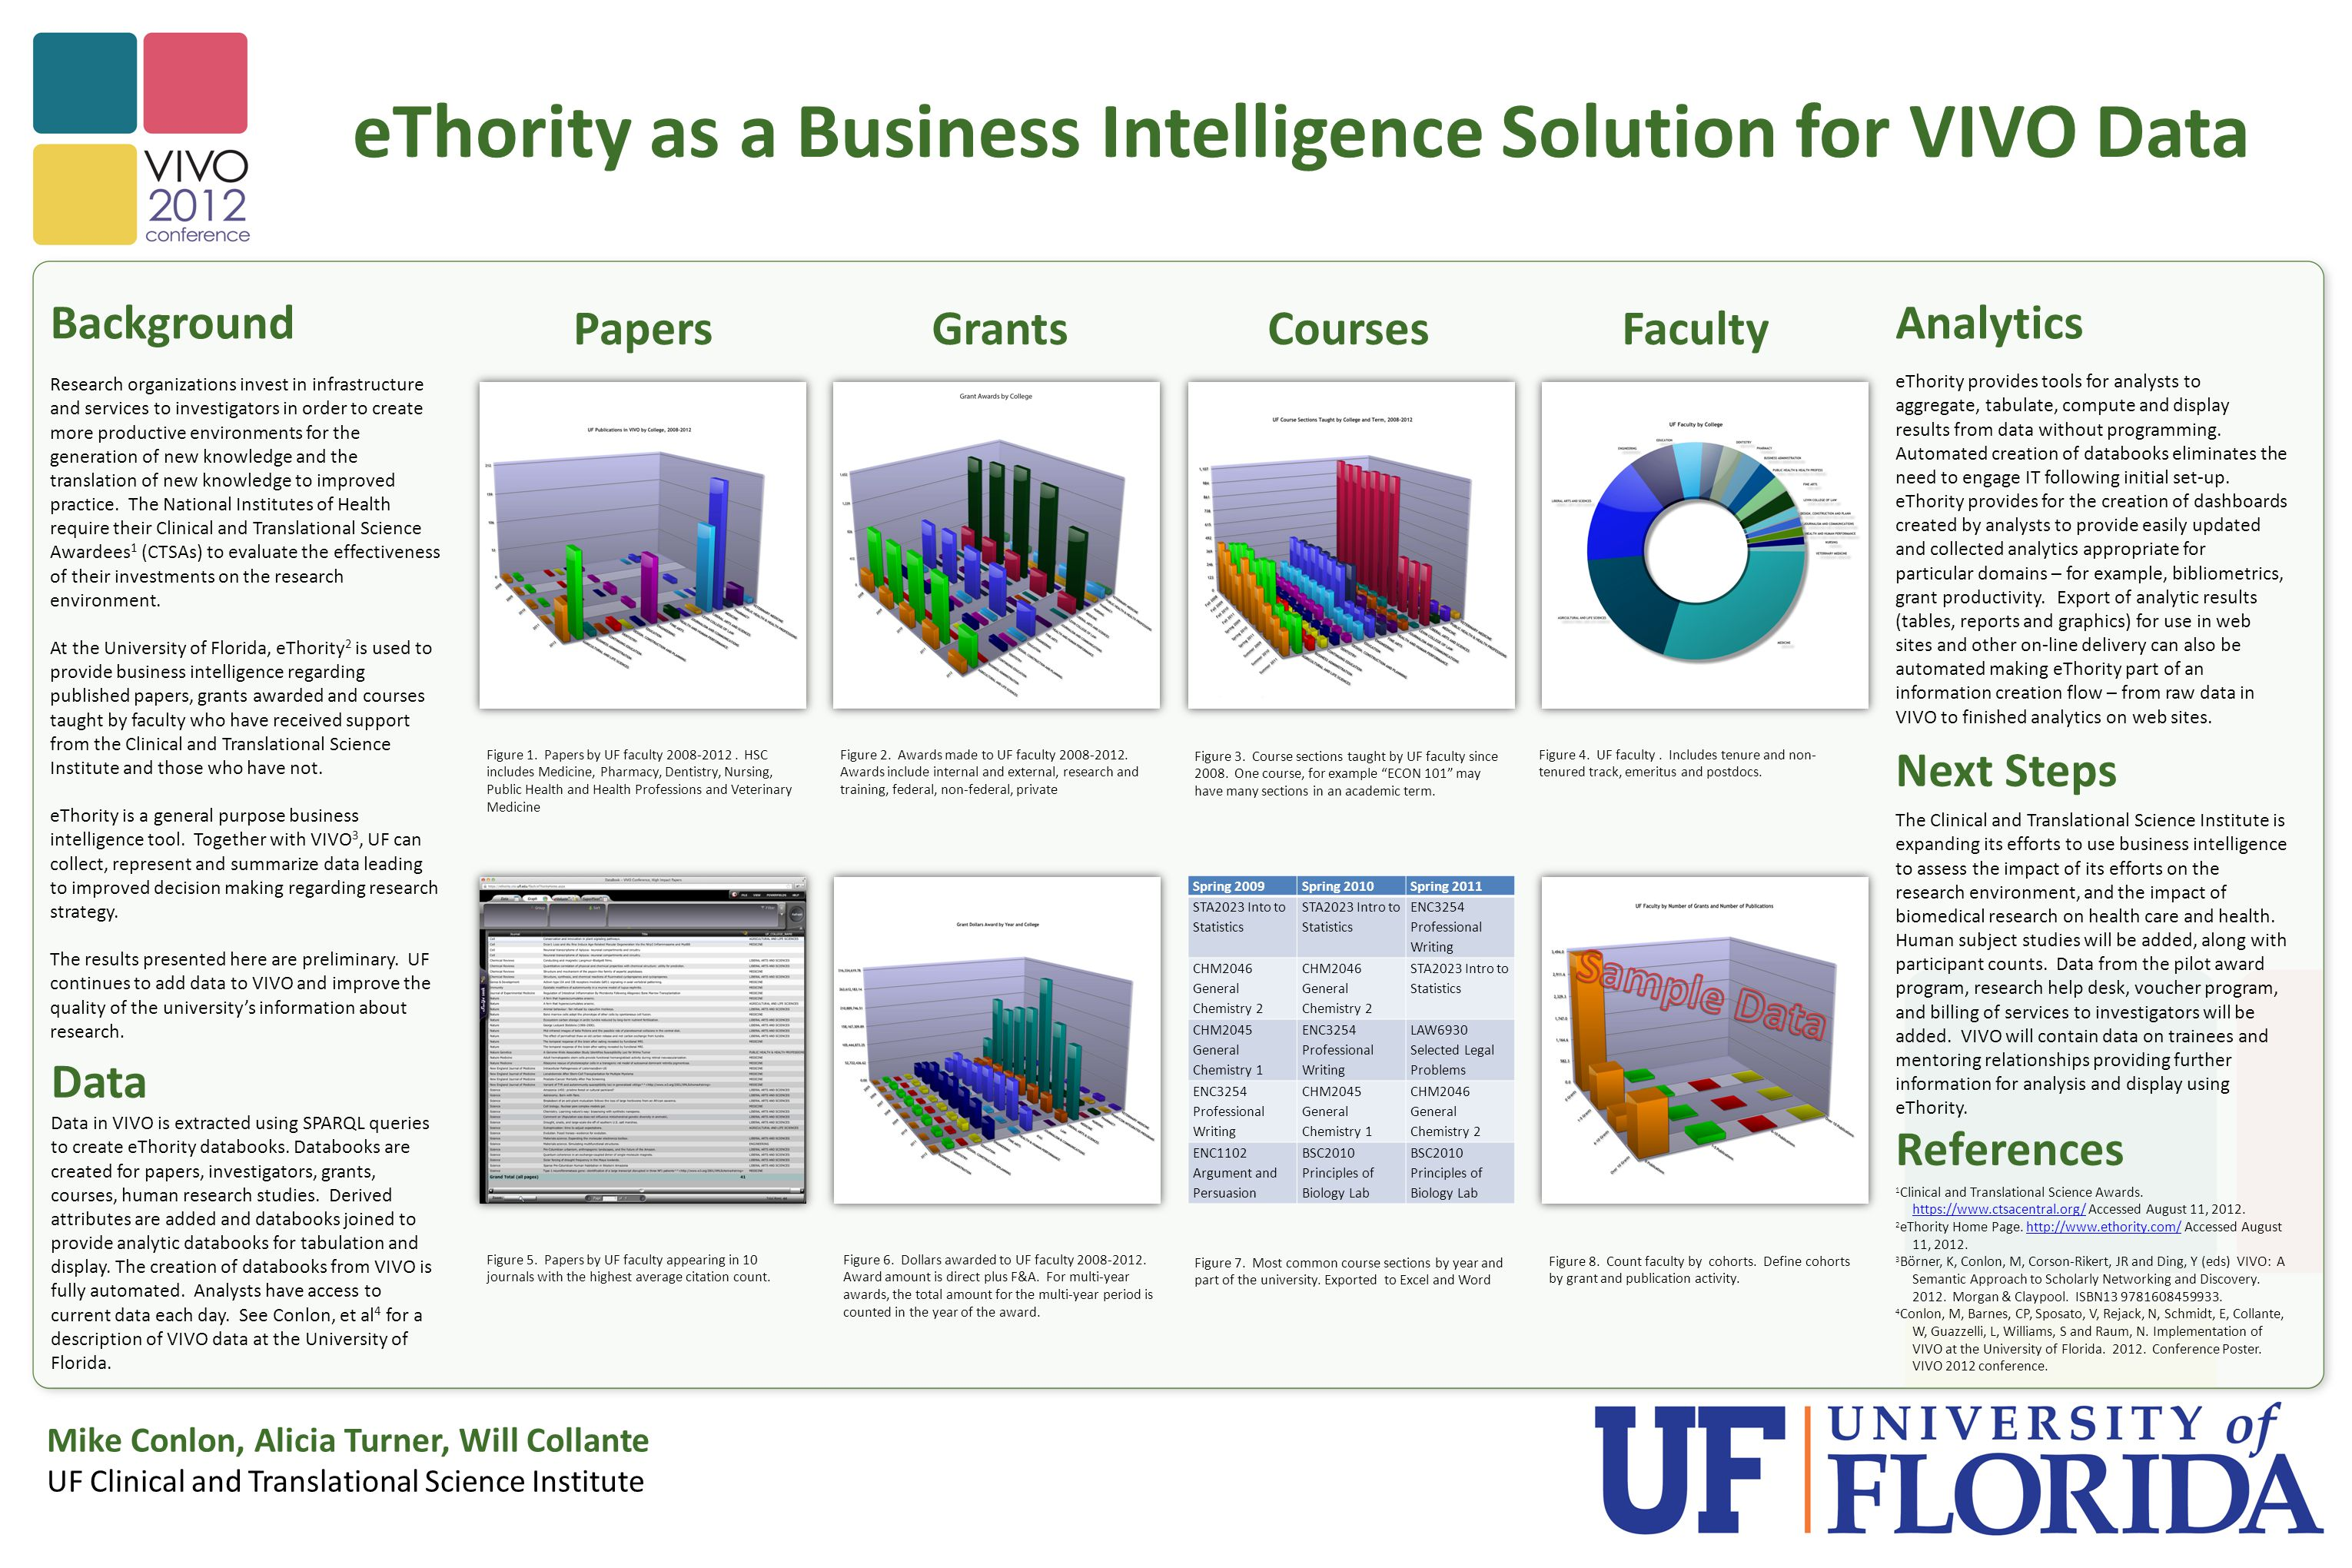 eThority as a Business Intelligence Solution for VIVO Data Mike Conlon, Alicia Turner, Will Collante UF Clinical and Translational Science Institute BackgroundAnalytics Next Steps Papers eThority provides tools for analysts to aggregate, tabulate, compute and display results from data without programming.